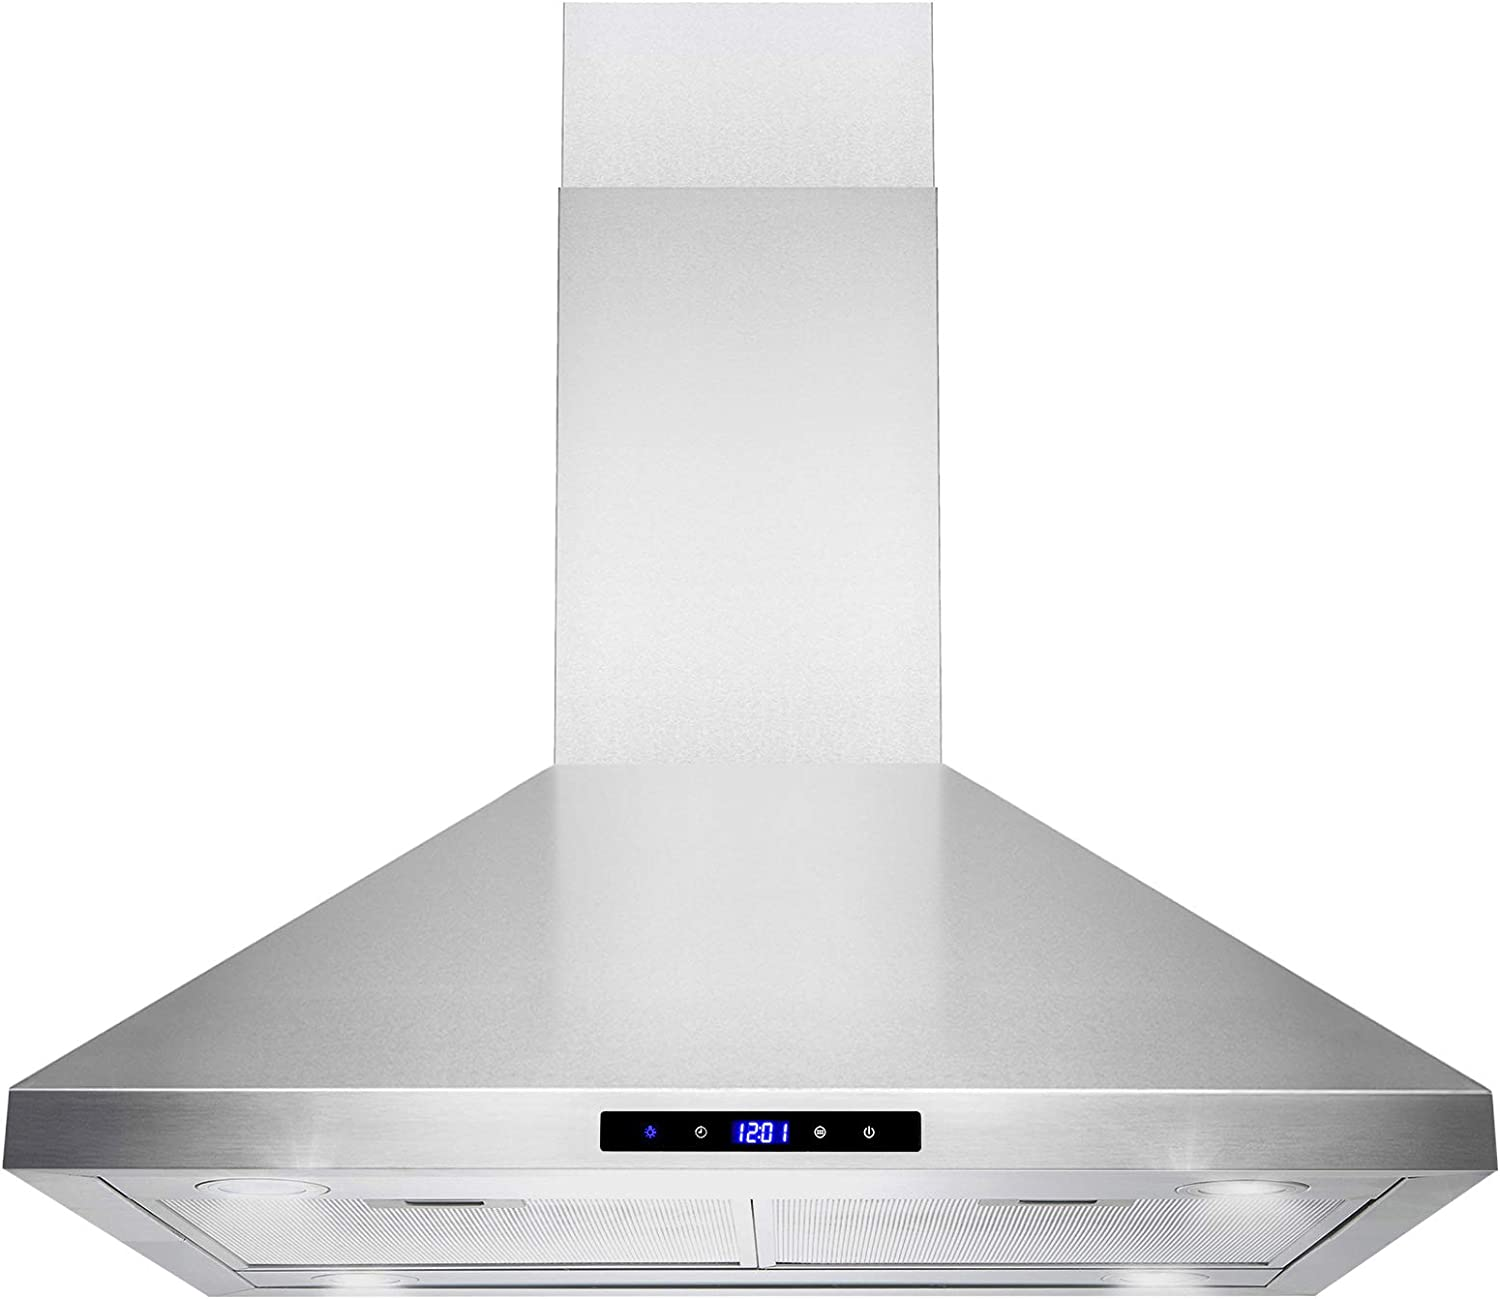 "Golden Vantage Island Mount Range Hood –30"" Stainless-Steel Hood Fan for Kitchen – 3-Speed Professional Quiet Motor – Premium Touch Control Panel – Minimalist Design – Mesh Filters & LED Lights"